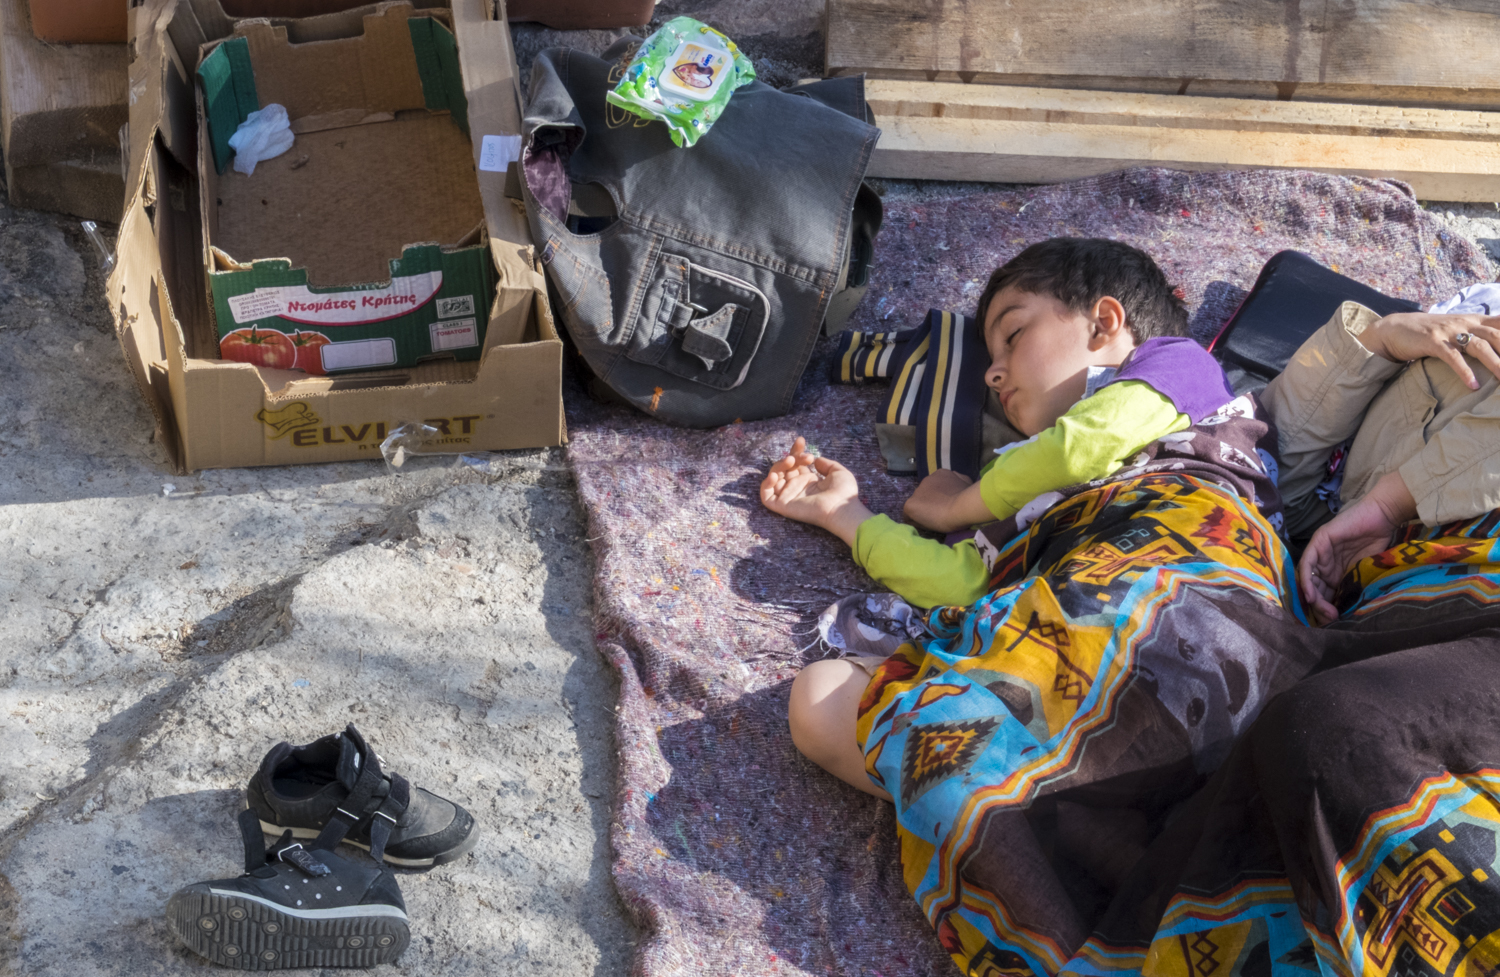 Child sleeping in a makeshift outdoor camp on the Greek island of Lesvos, 2015. © Michael S Honegger